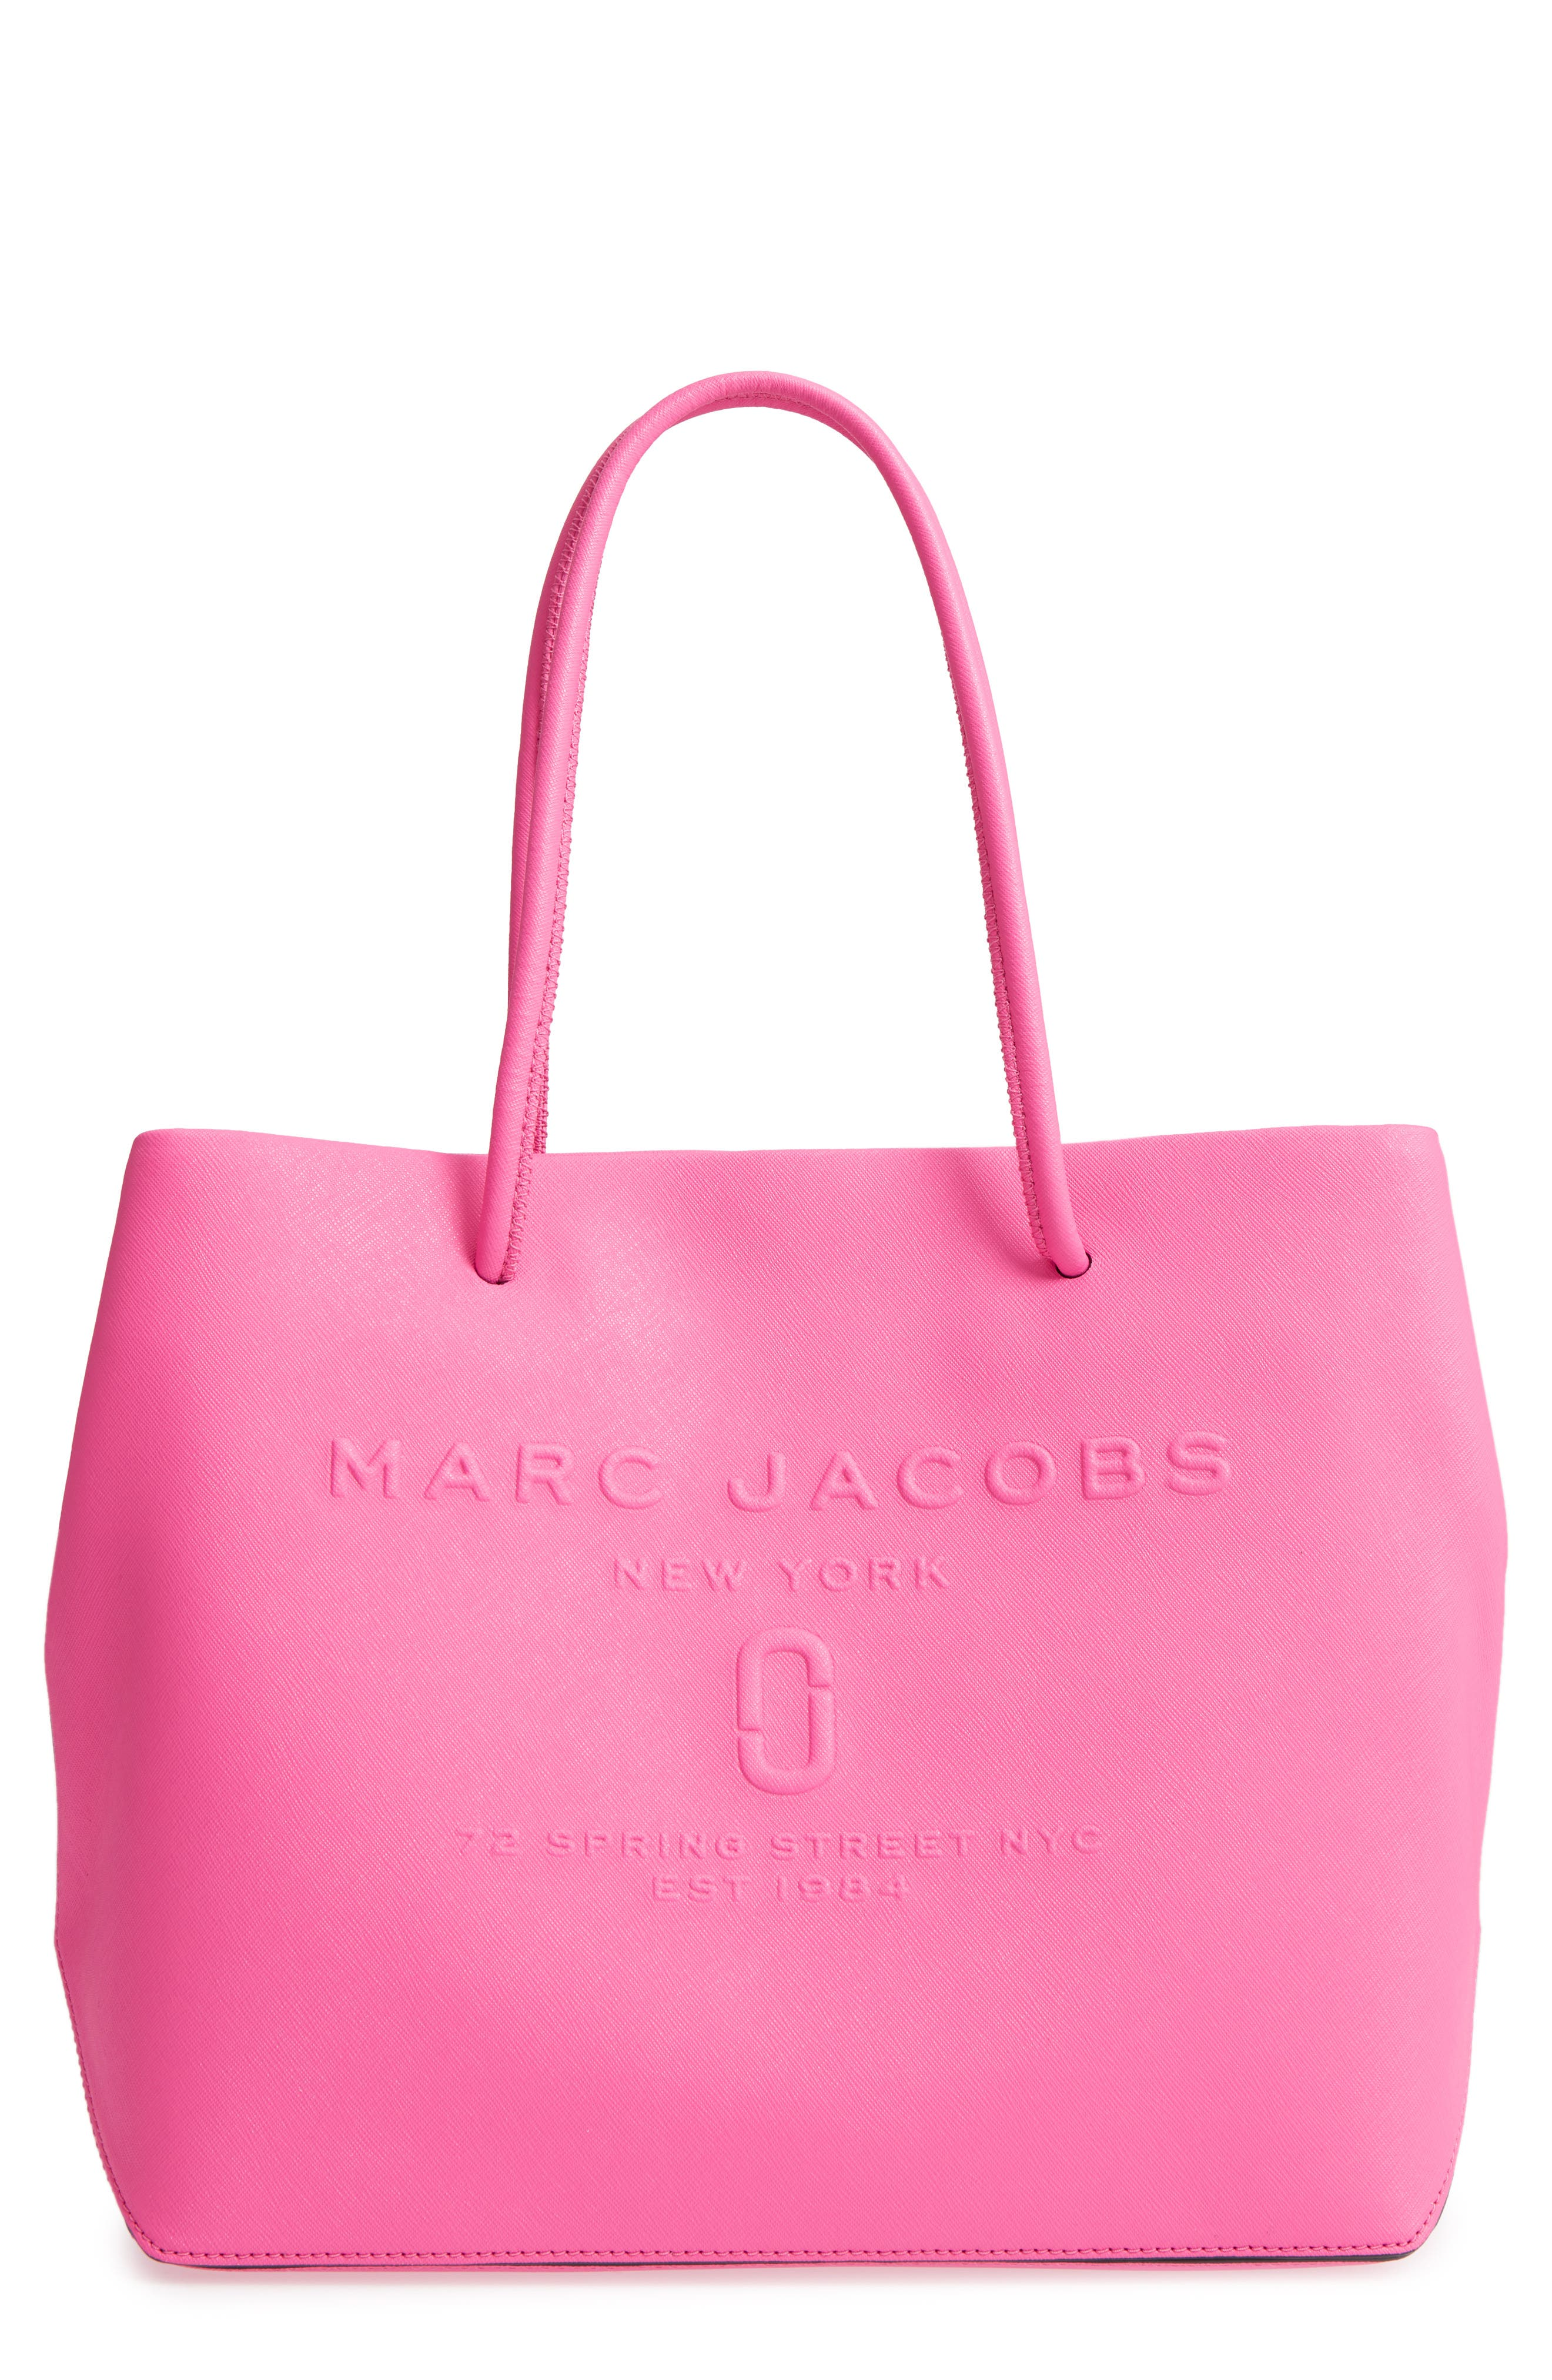 Tote Bag, Blackberry, Leather, 2017, one size Marc Jacobs